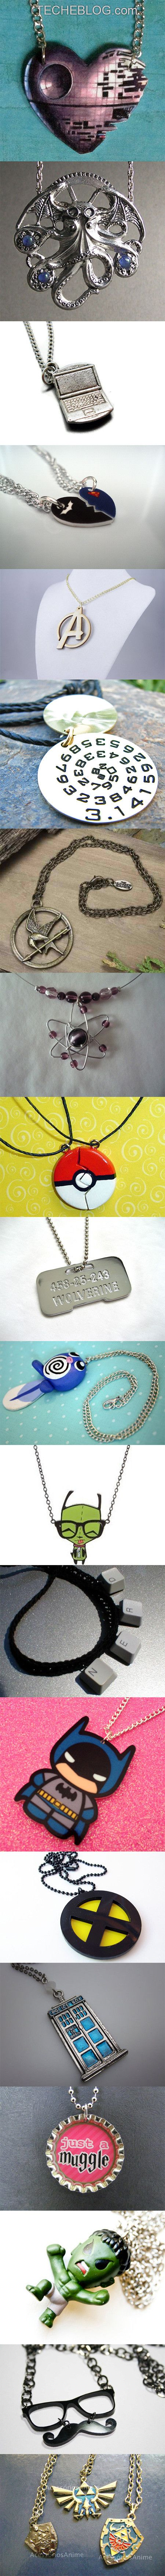 20 Cool and Creative Necklaces for Geeks - TechEBlog  Pi Necklace from http://www.boutiqueacademia.com/products/Pi-to-35-Decimals.html